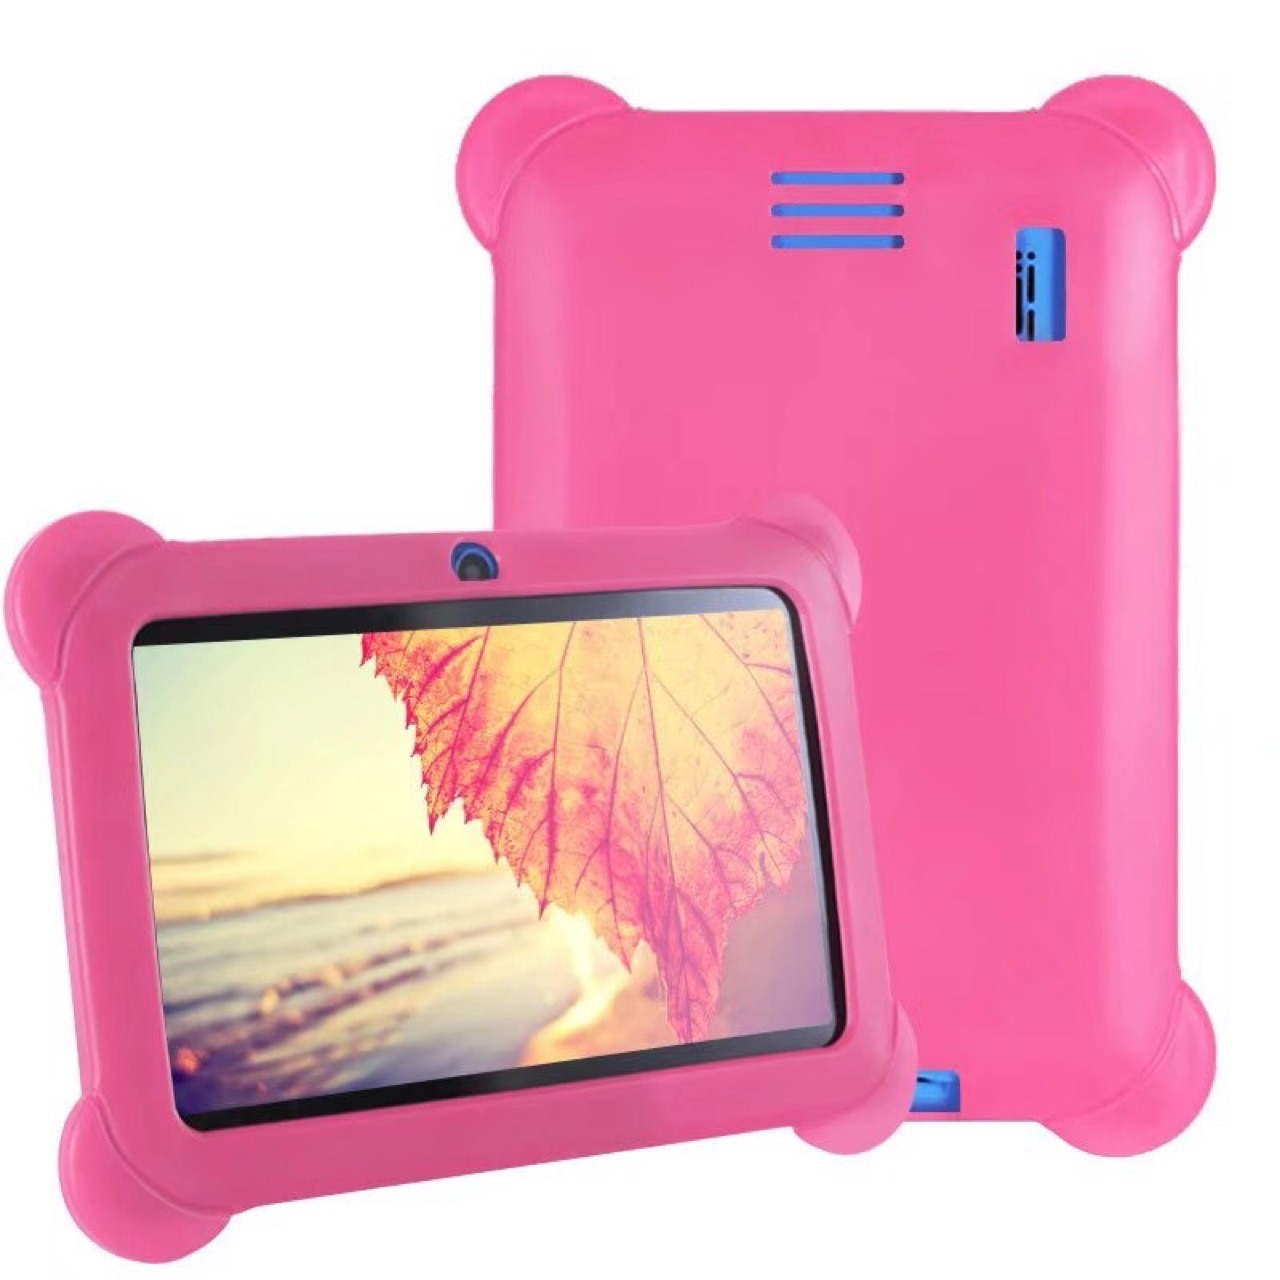 A genuine 4-core Android 7-inch tablet is suitable for office, music, and gaming portable tablet computers